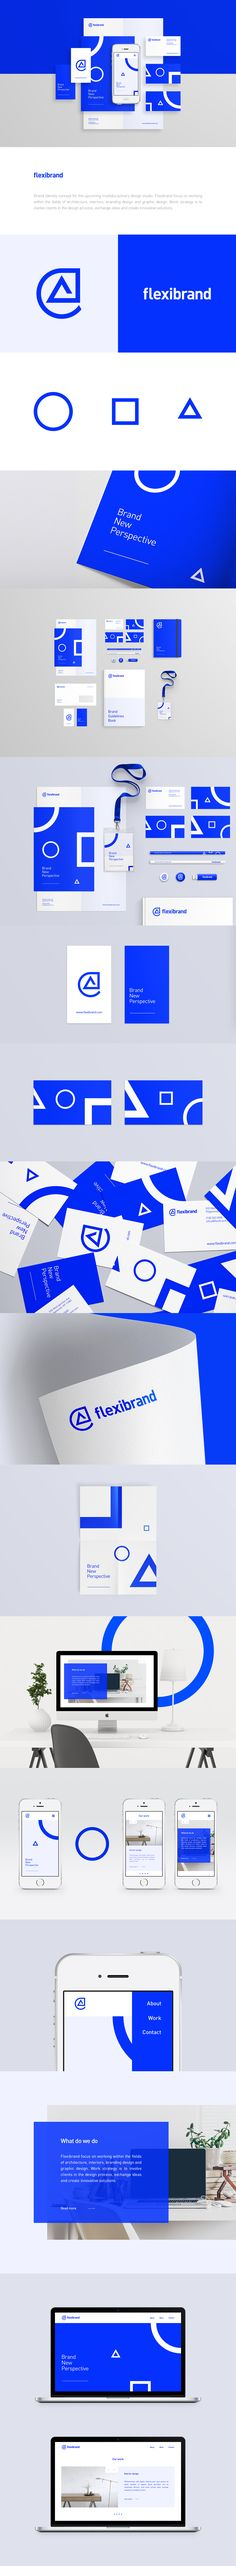 Brand Identity concept for the upcoming multidisciplinary design studio.